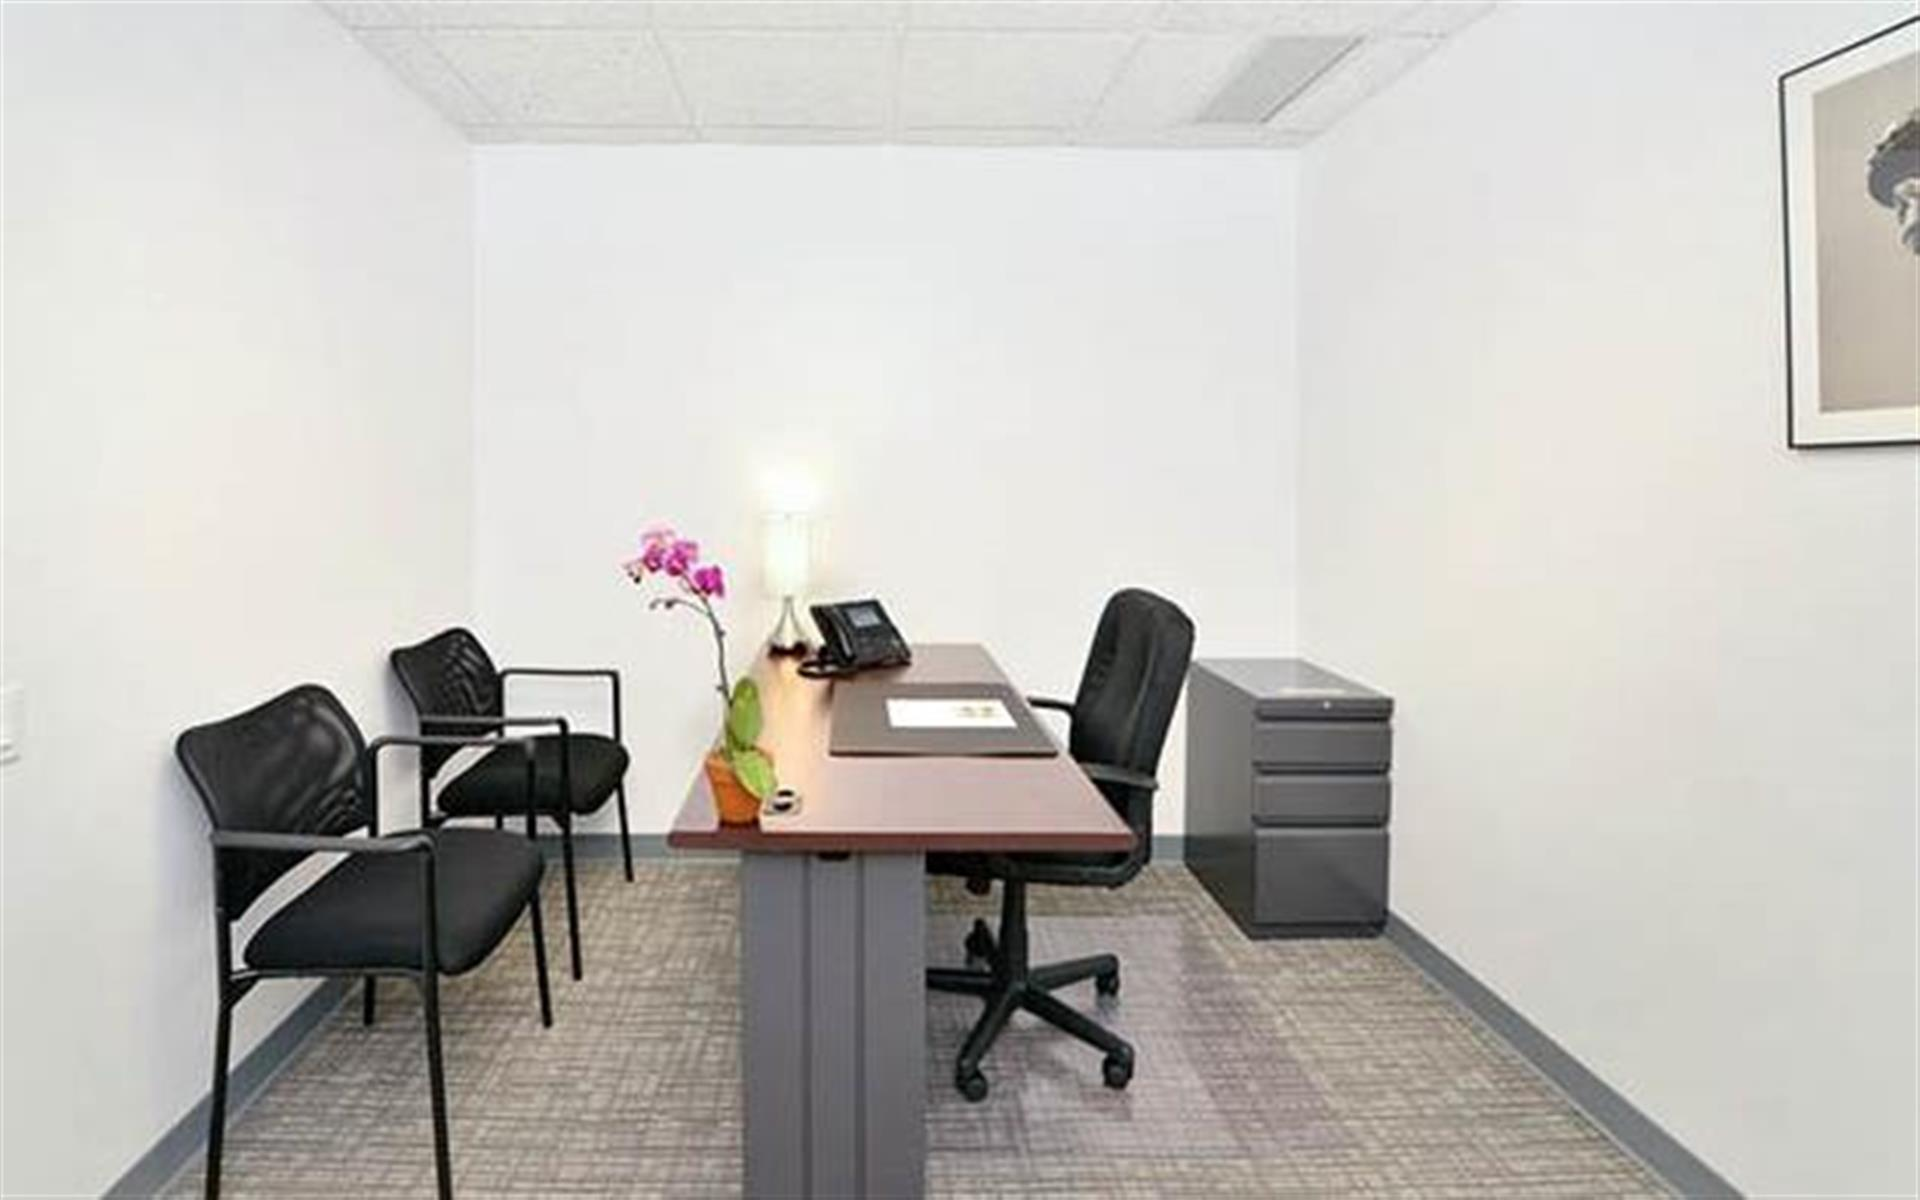 NYC Office Suites 733 (3rd Ave. & 45th) - Office 1500 Corner Office (6 Desks)